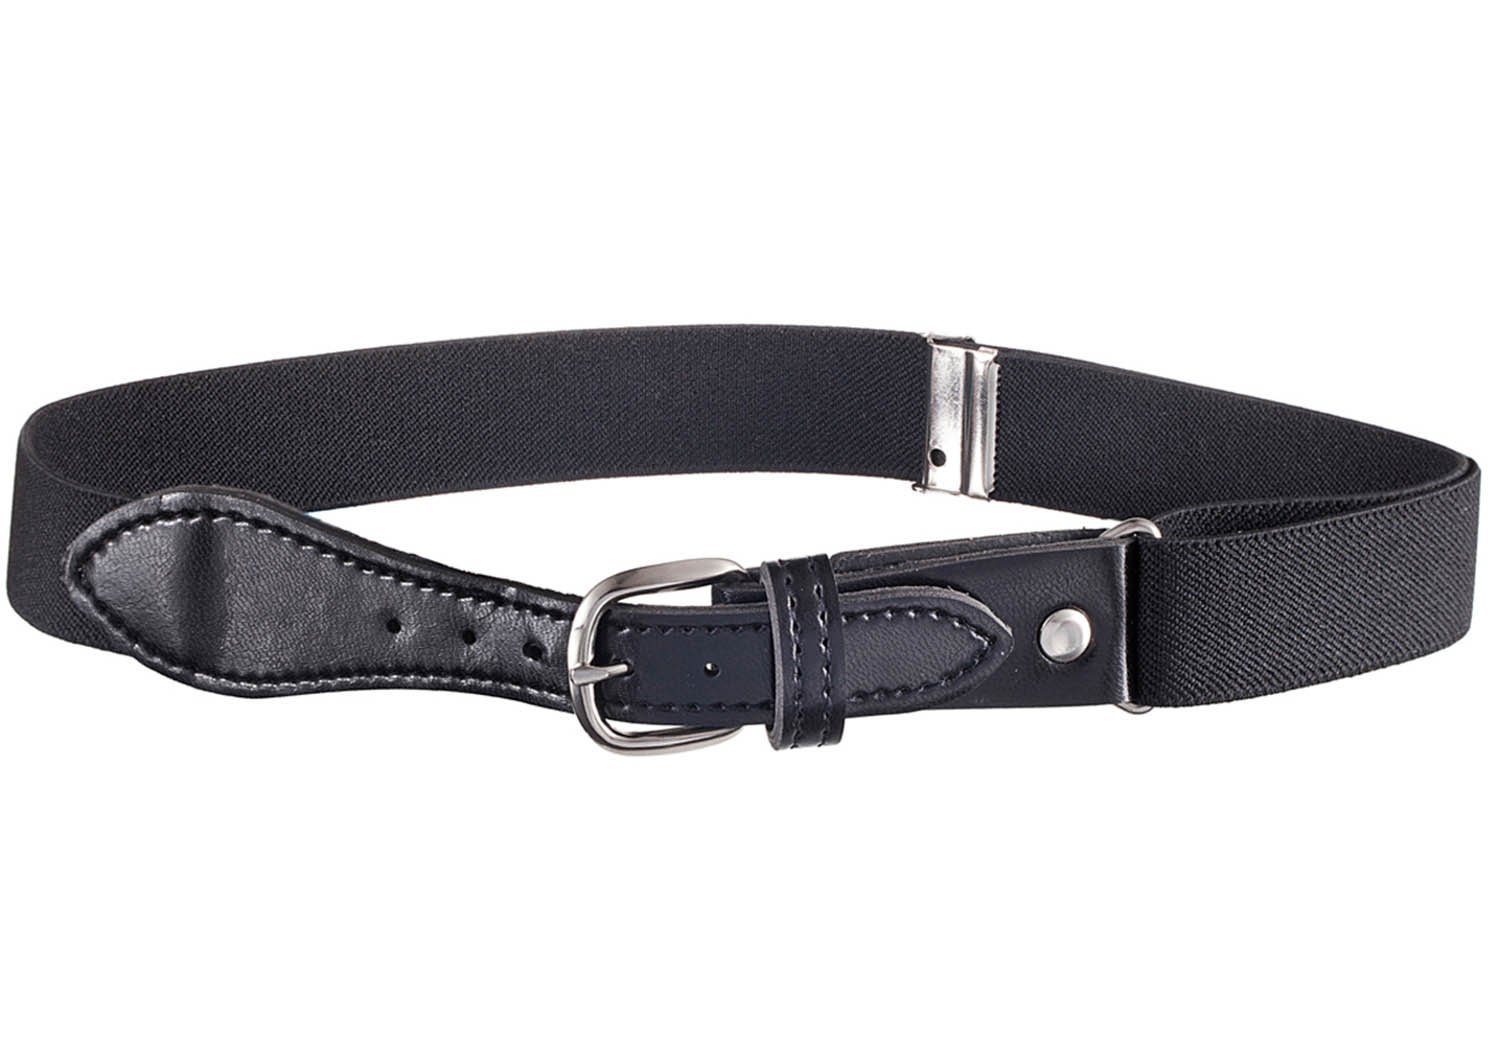 Kids Elastic Adjustable Strech Belt with Leather Closure - Black